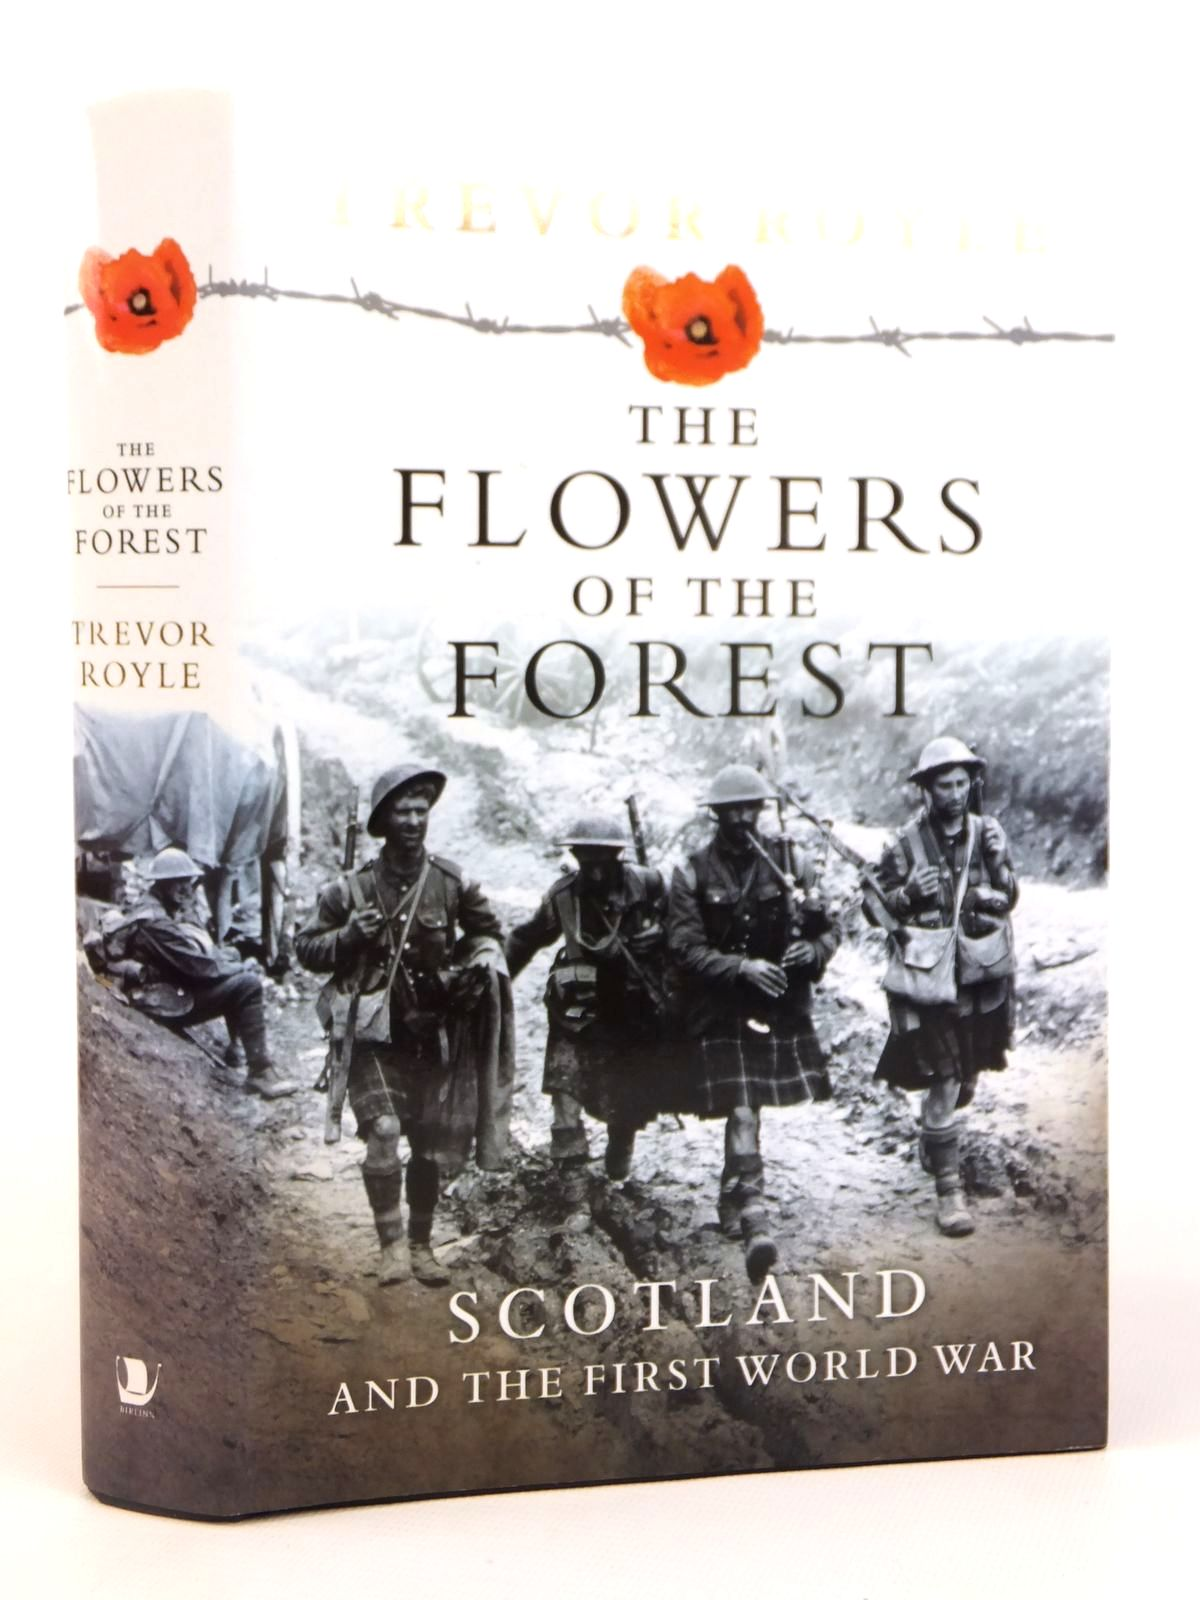 Photo of THE FLOWERS OF THE FOREST SCOTLAND AND THE FIRST WORLD WAR written by Royle, Trevor published by Birlinn Limited (STOCK CODE: 1608845)  for sale by Stella & Rose's Books